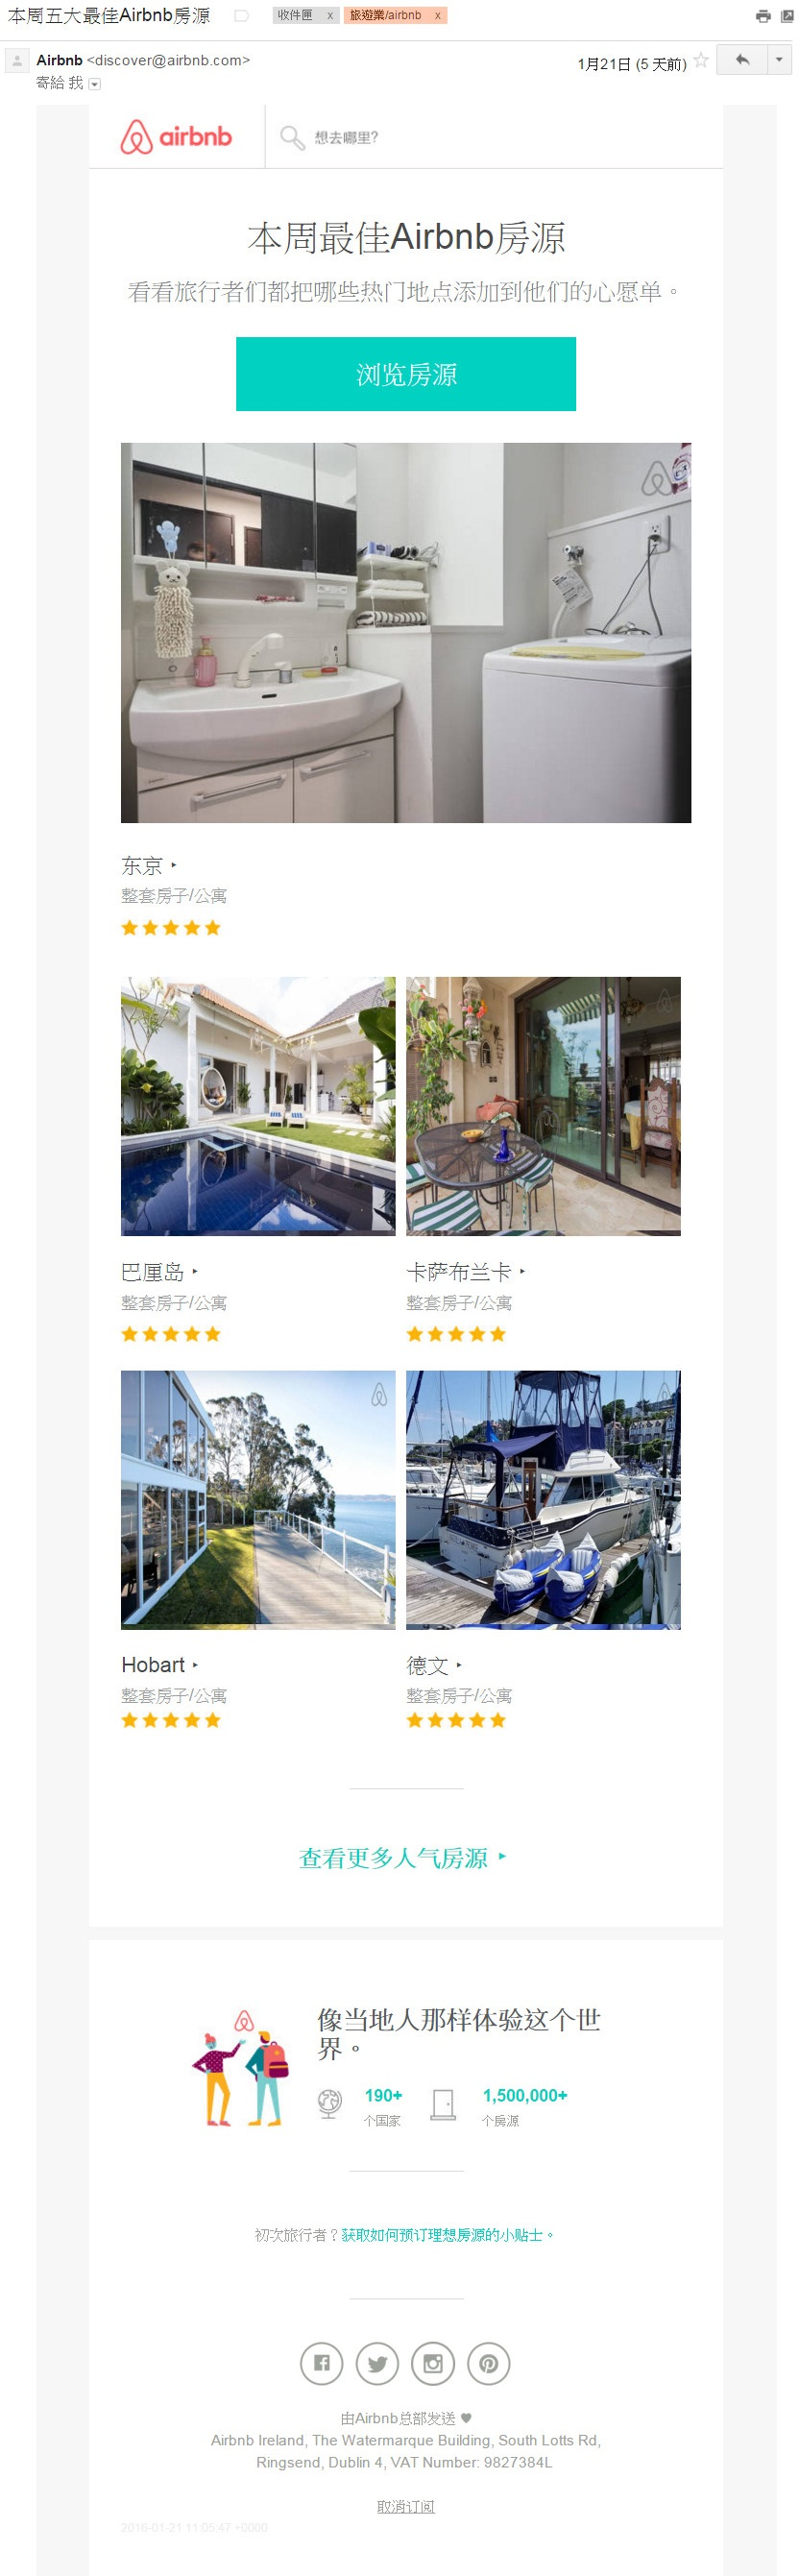 airbnb_discover